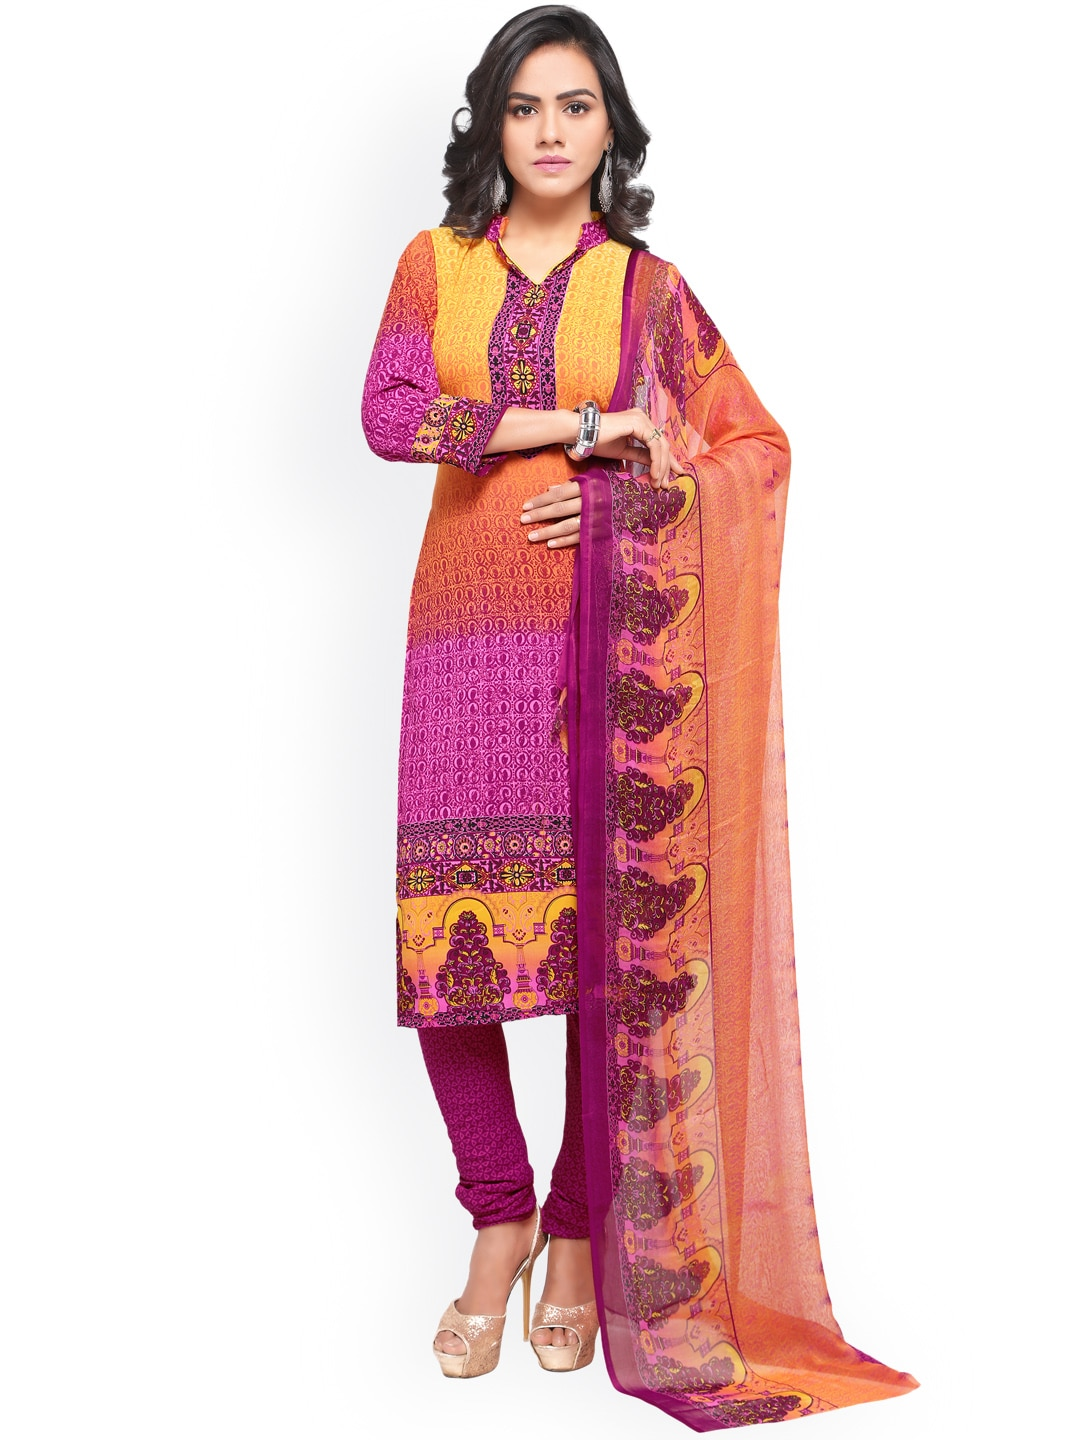 Satrani Pink & Yellow Poly Crepe Unstitched Dress Material image